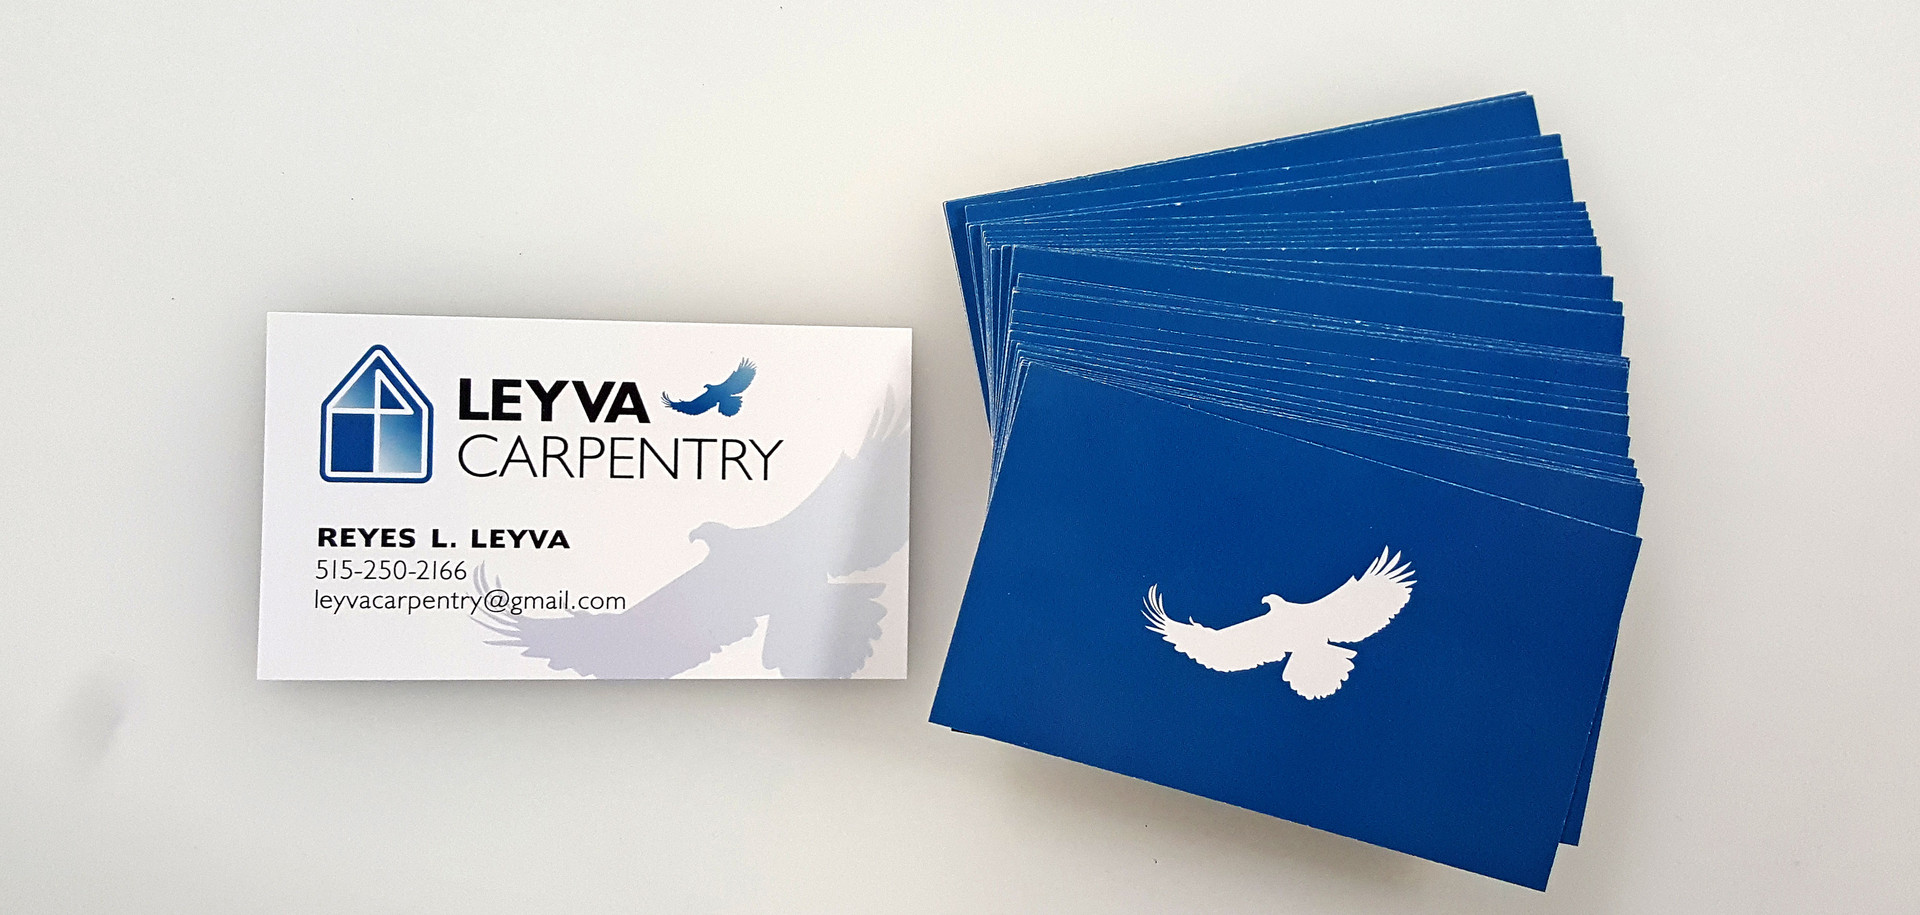 Leyva Carpentry Logo & Business Design &